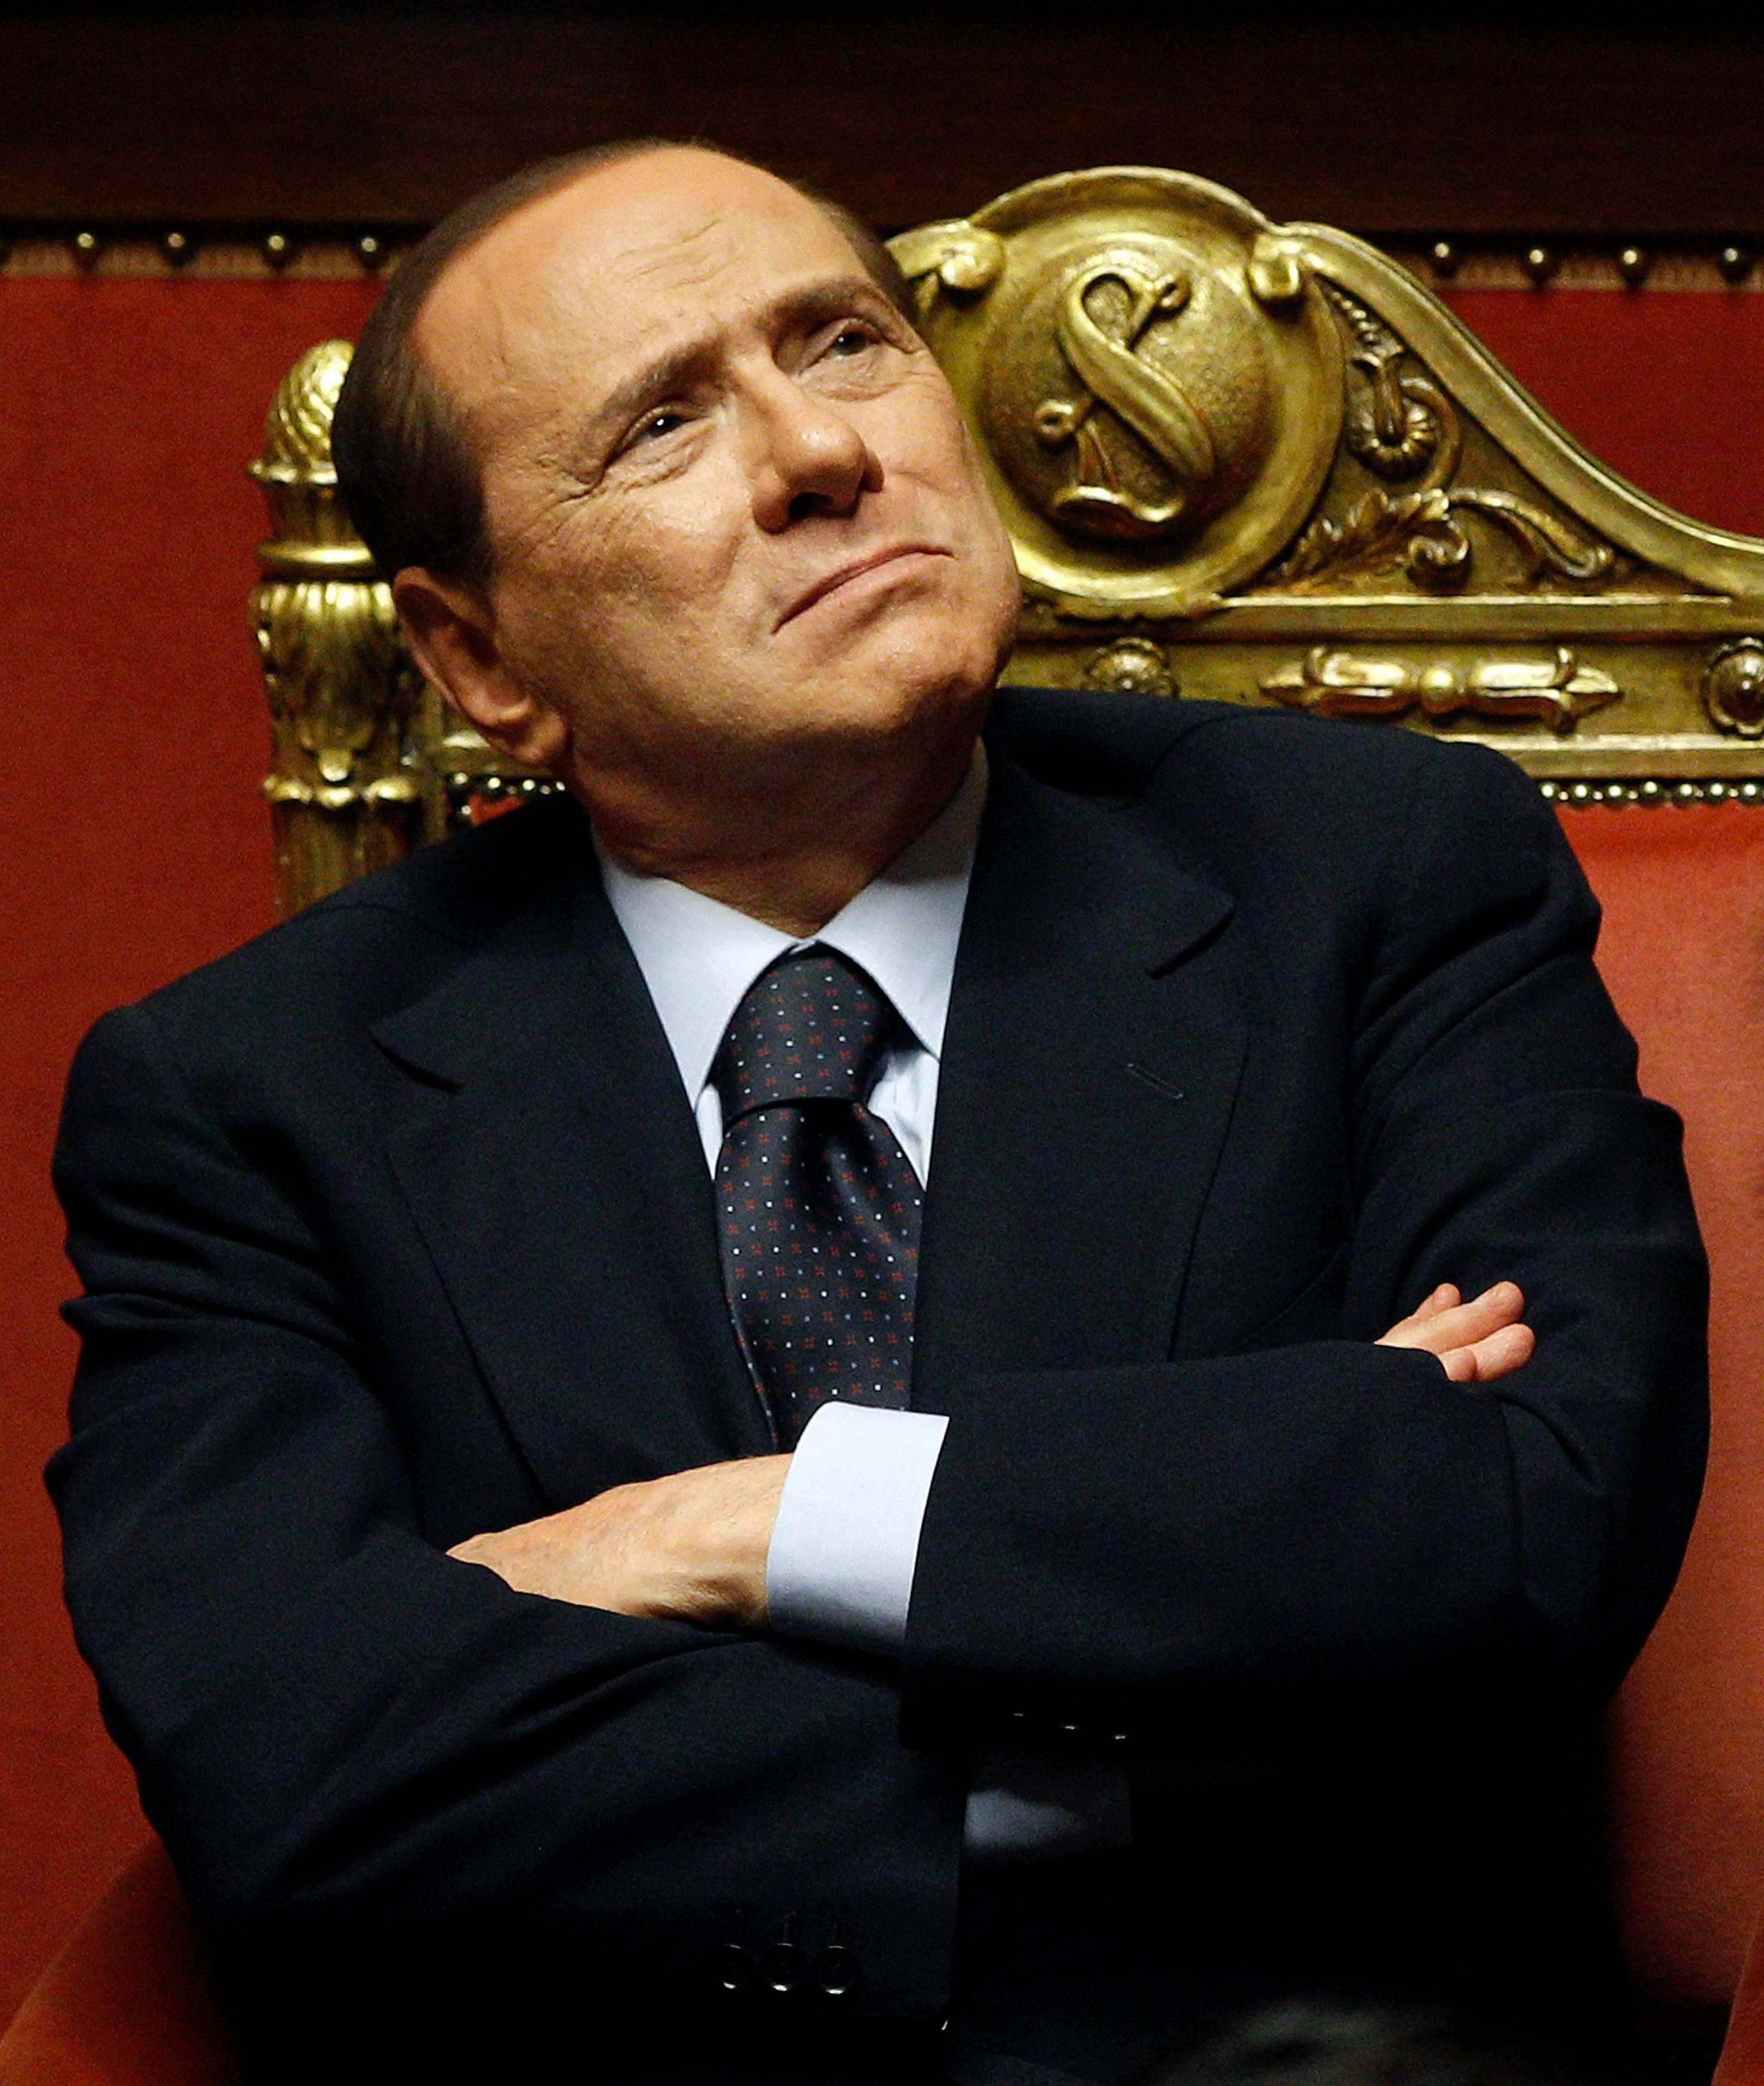 Fotos de berlusconi sin censura 14